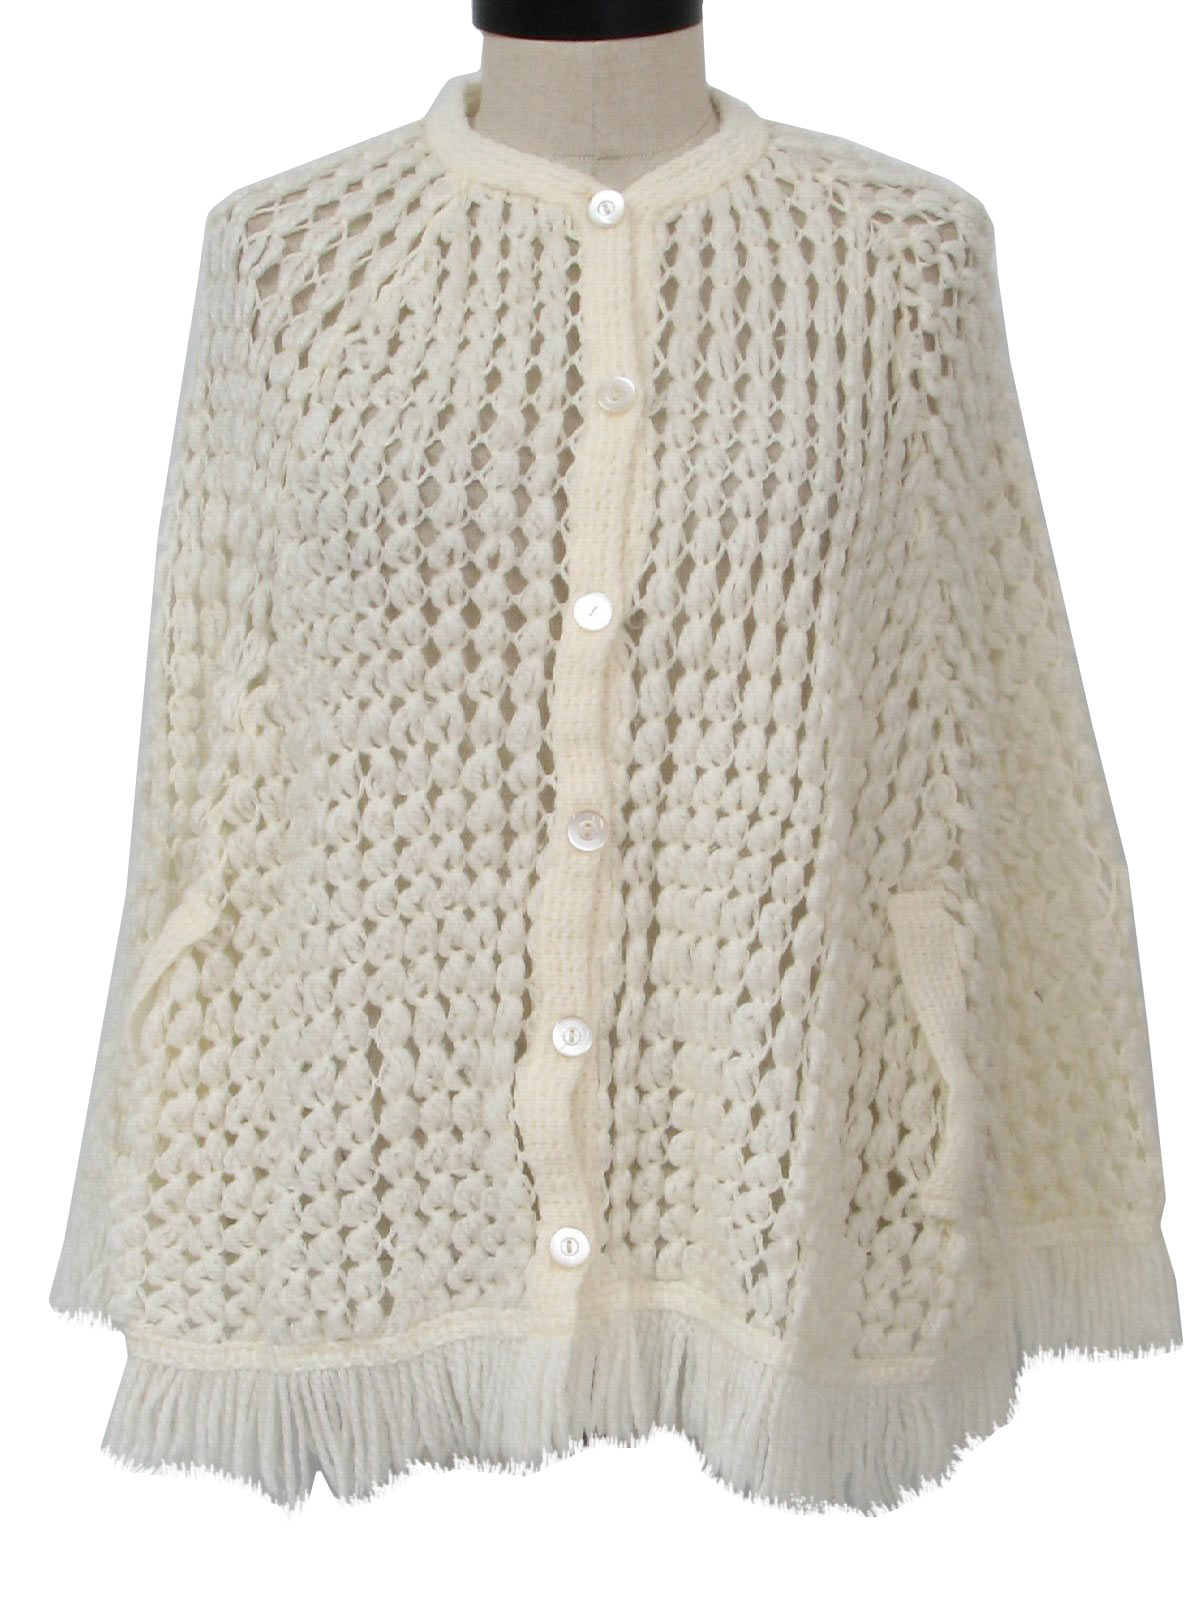 Arm Knitting Pullover : Vintage s sweater hand knit womens white